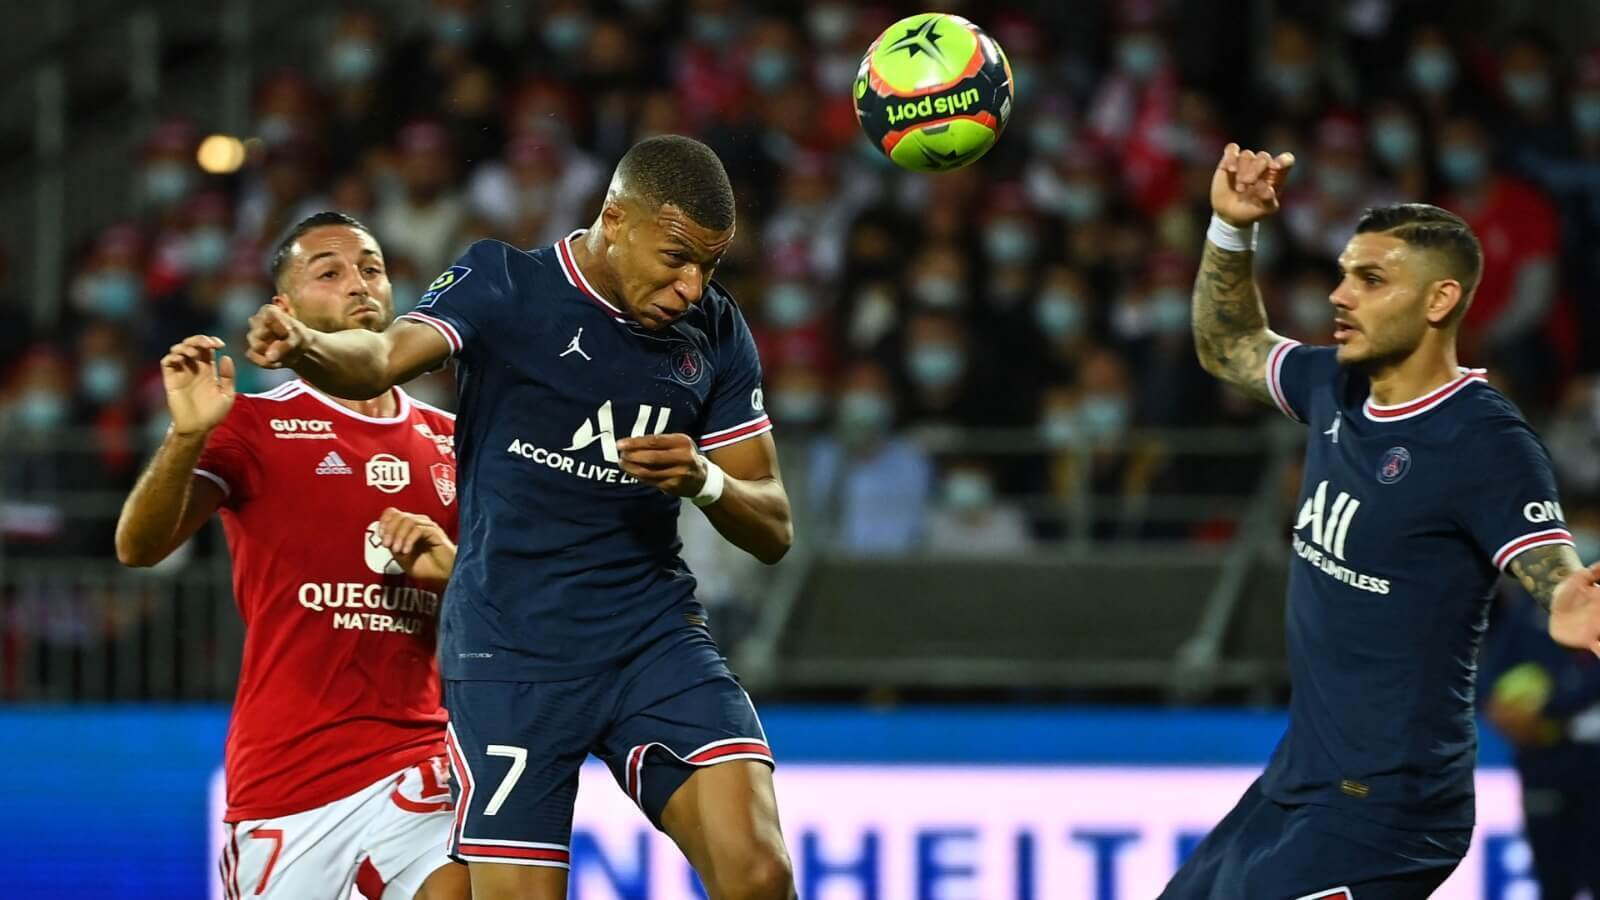 Thierry Henry hopes Mbappe stays at PSG amidst Real Madrid interest